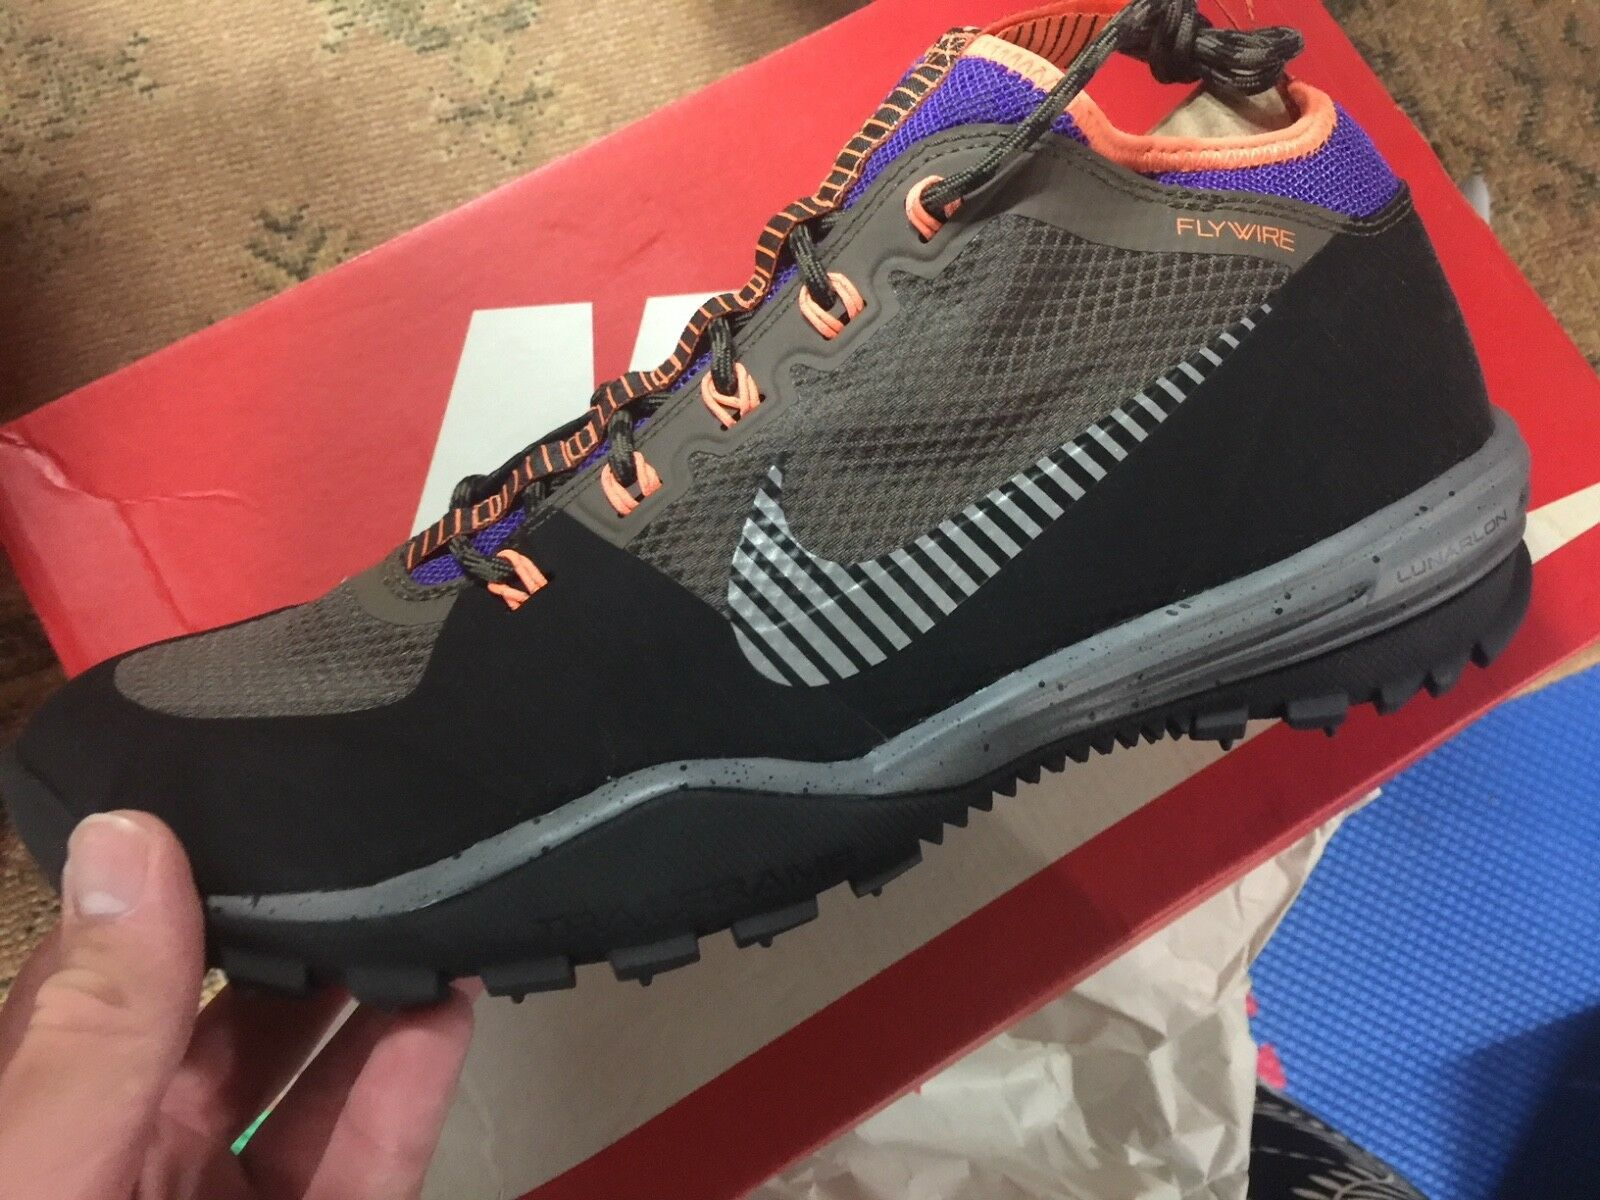 NEW Nike Lunarincognito Sneakerboots Sneakerboots Sneakerboots Black Metallic Silver Purple orange size 10 7e92f1